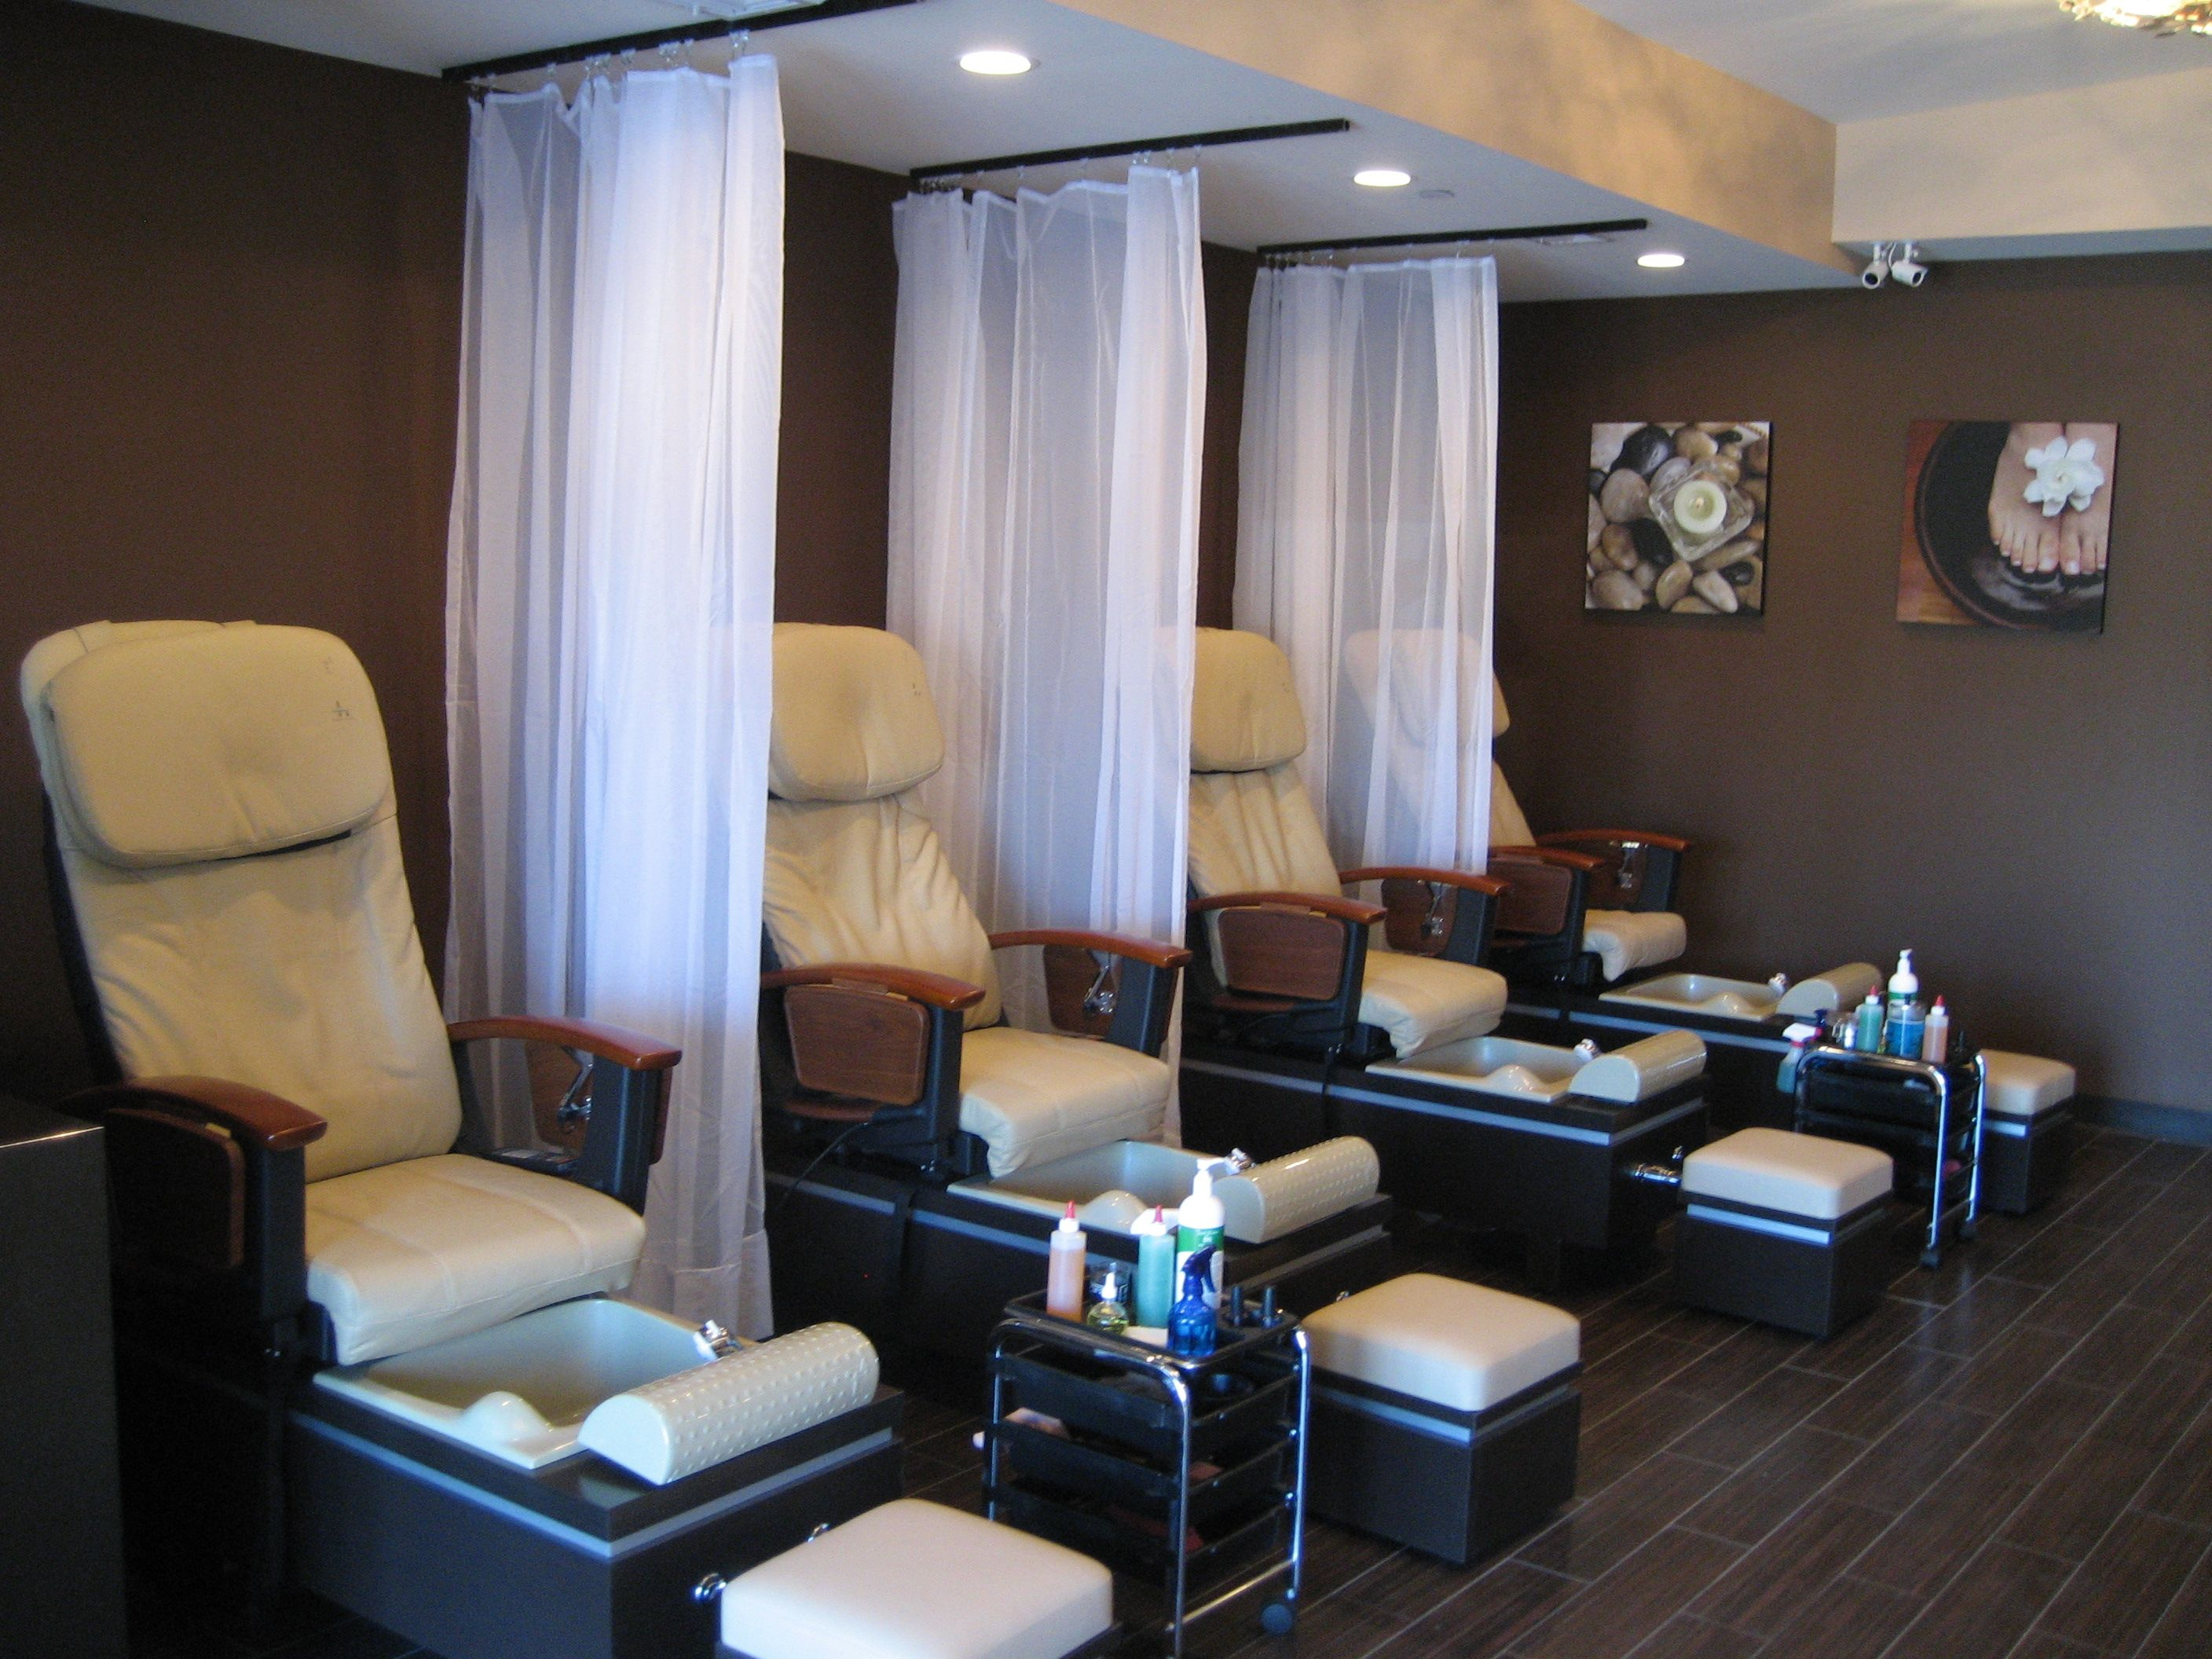 small nail salon interior designs   Google Search   misc     small nail salon interior designs   Google Search